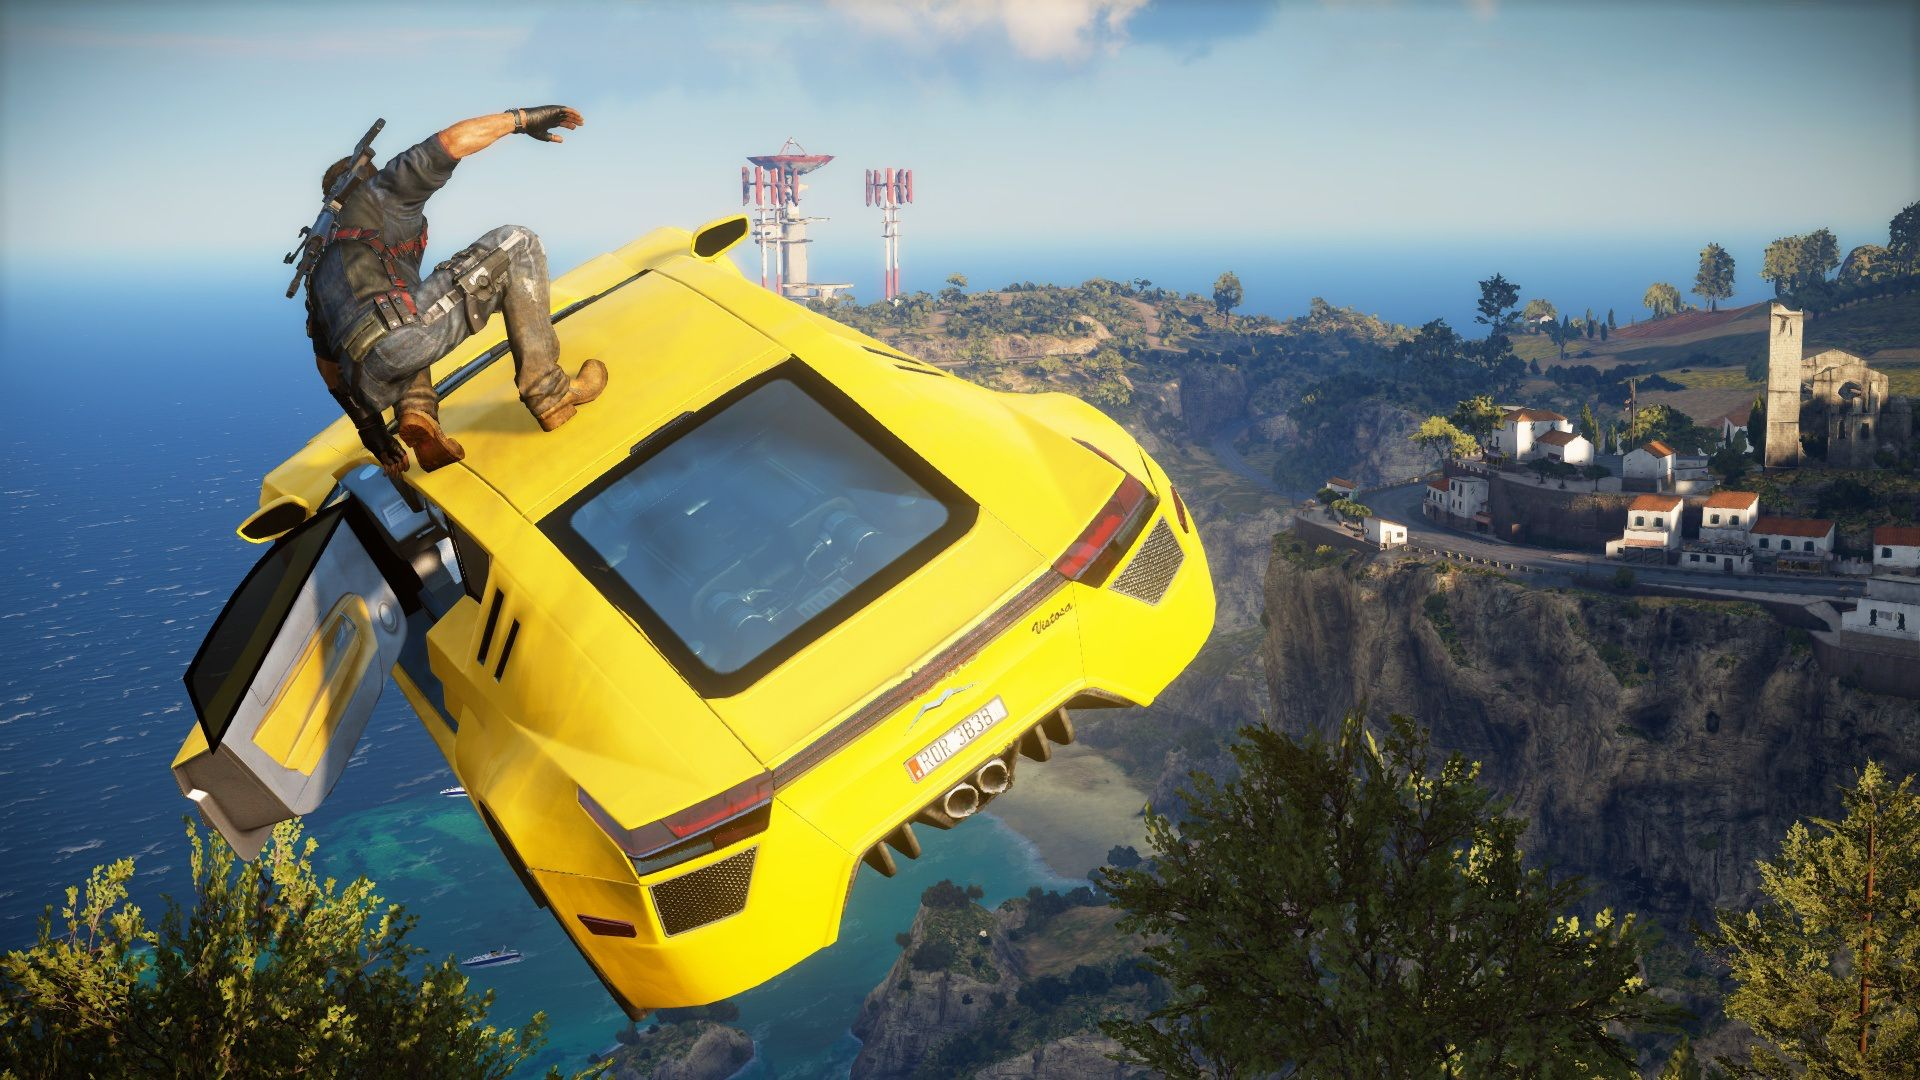 Just Cause 3 Is On A Mission For Your Time & Money - http://wp.me/p67gP6-3yC